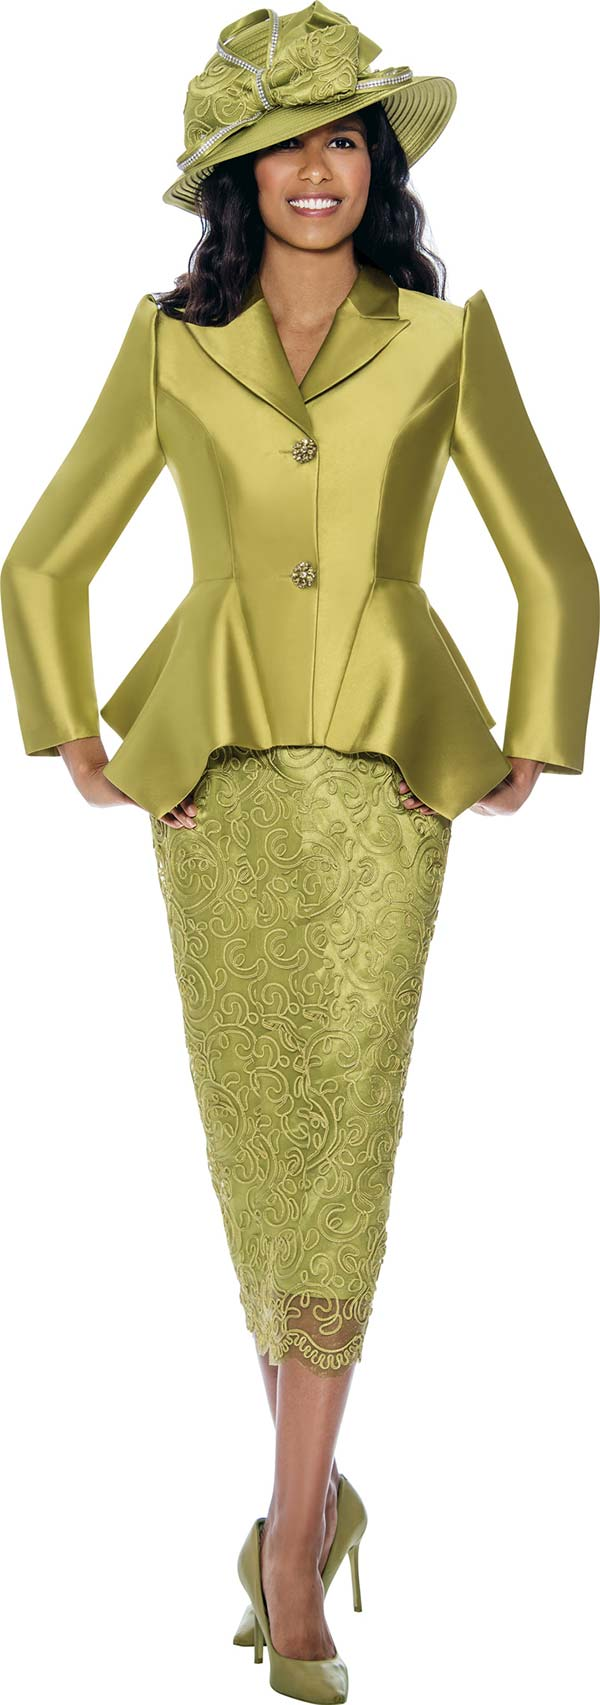 GMI G8092-Green - Church Suit With Lace Skirt And Sharkbite Style Peak Lapel Jacket